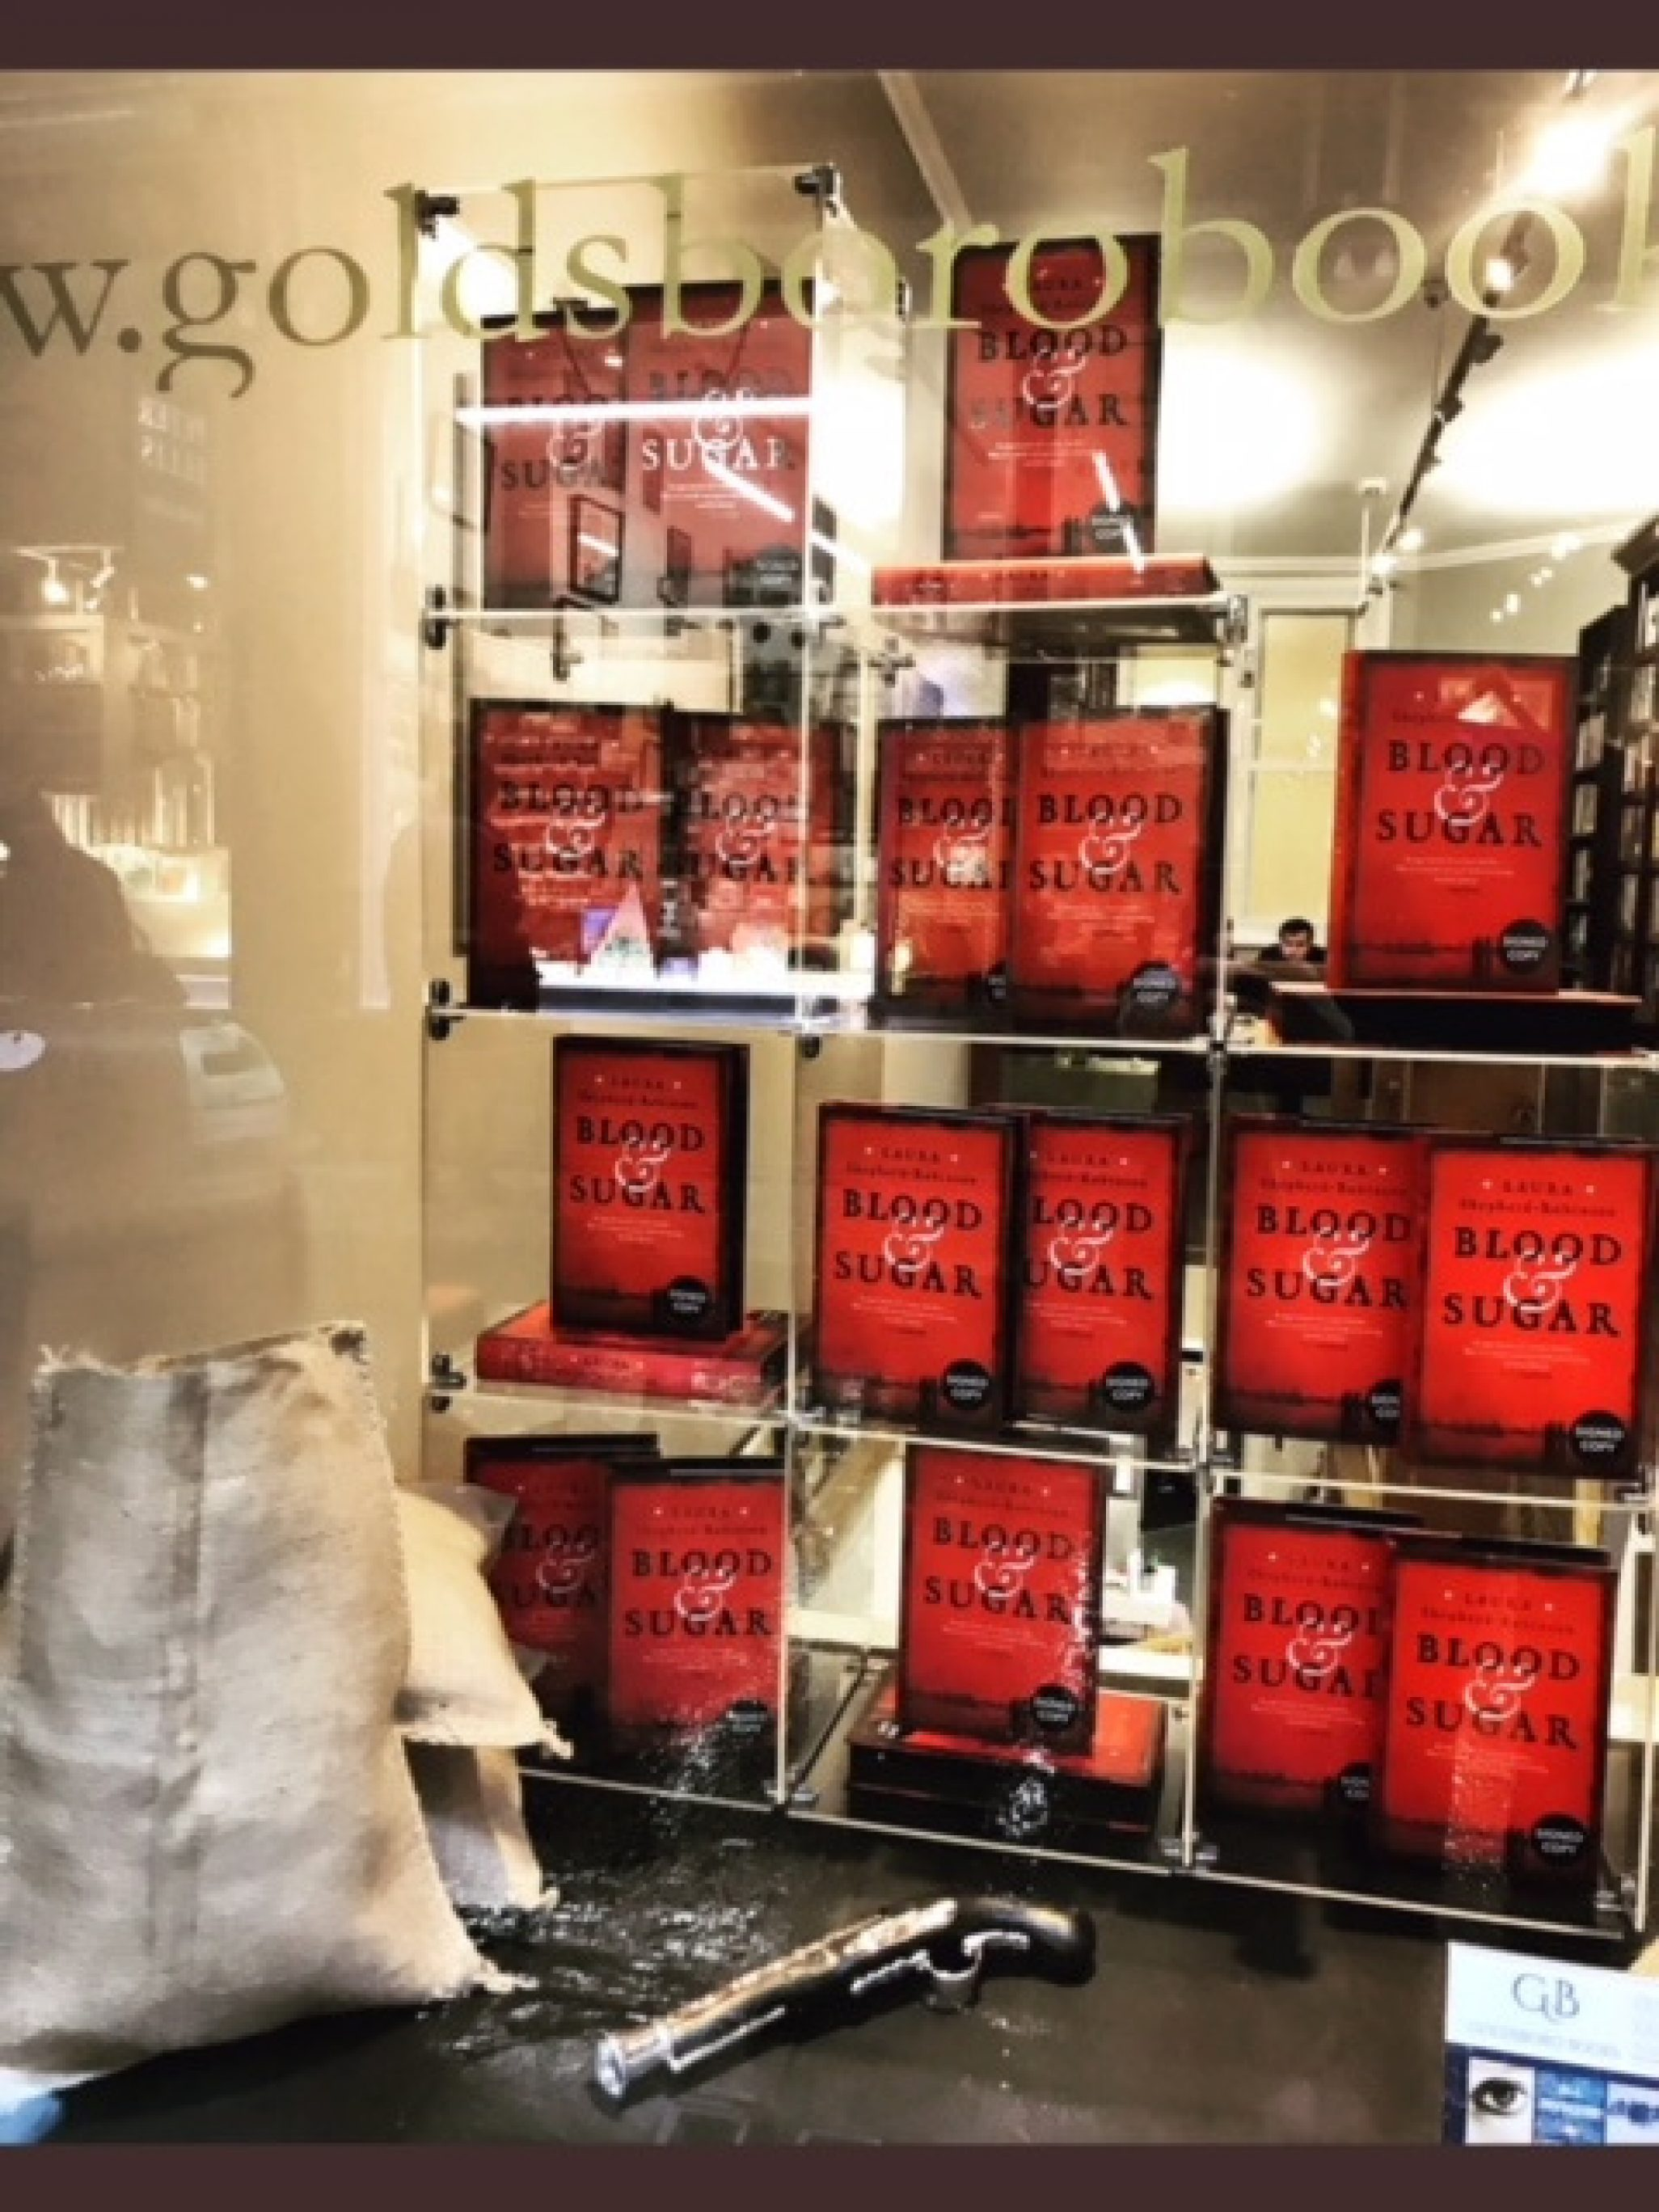 Bestsellers at Goldsboro Books - W/C January 28th 2019